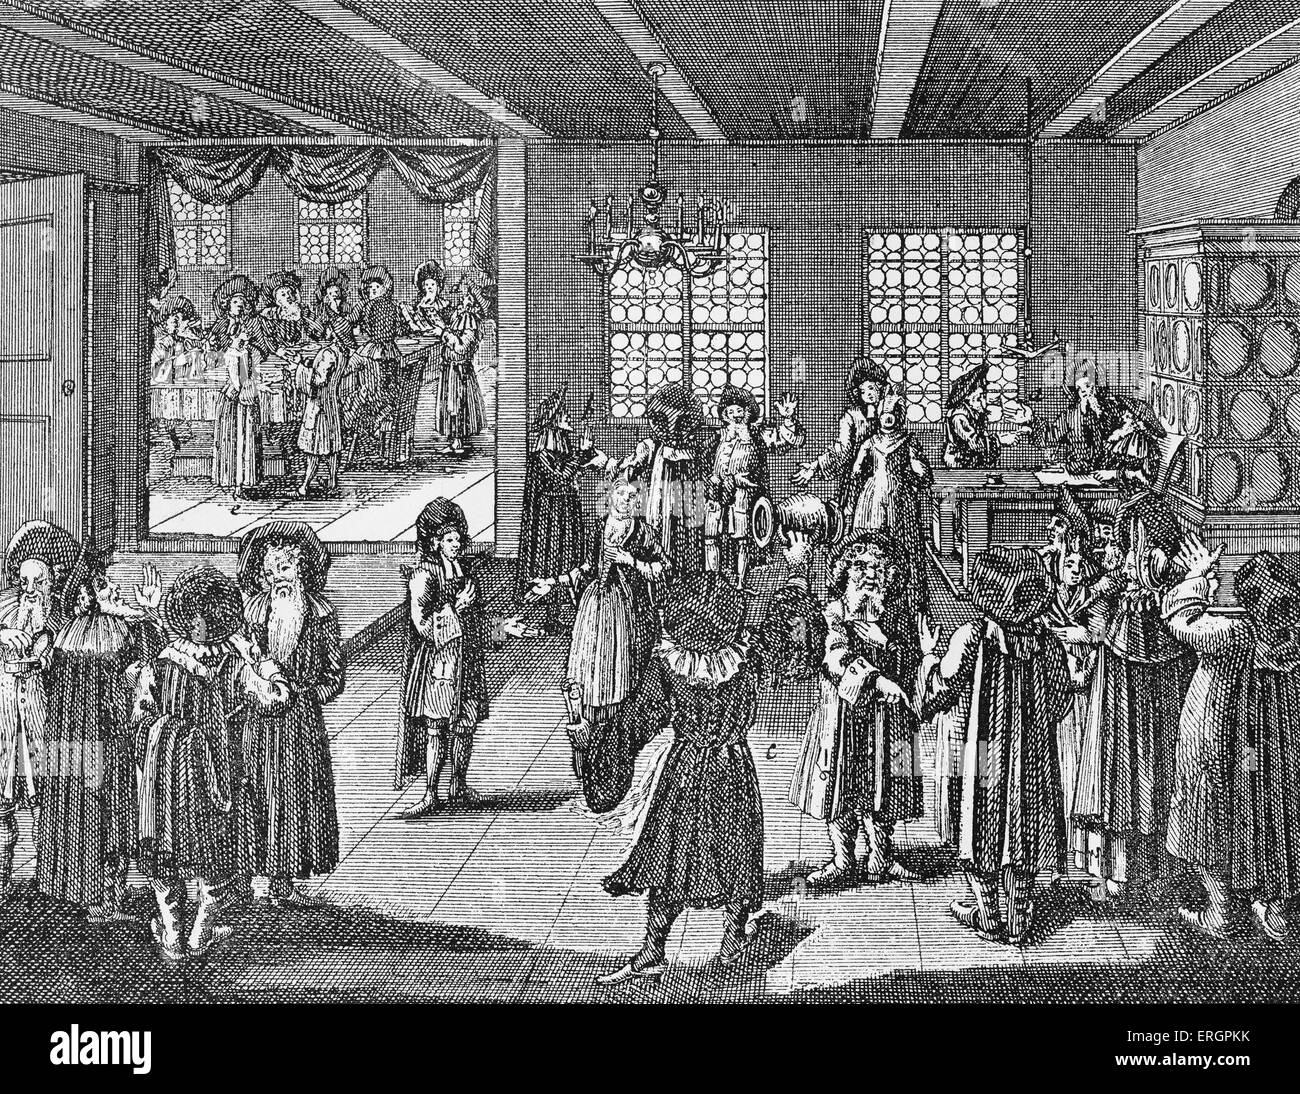 Wedding celebration feast after mariage ceremony / Die Eheschliessung of German Jews in 18th century. Engraving - Stock Image